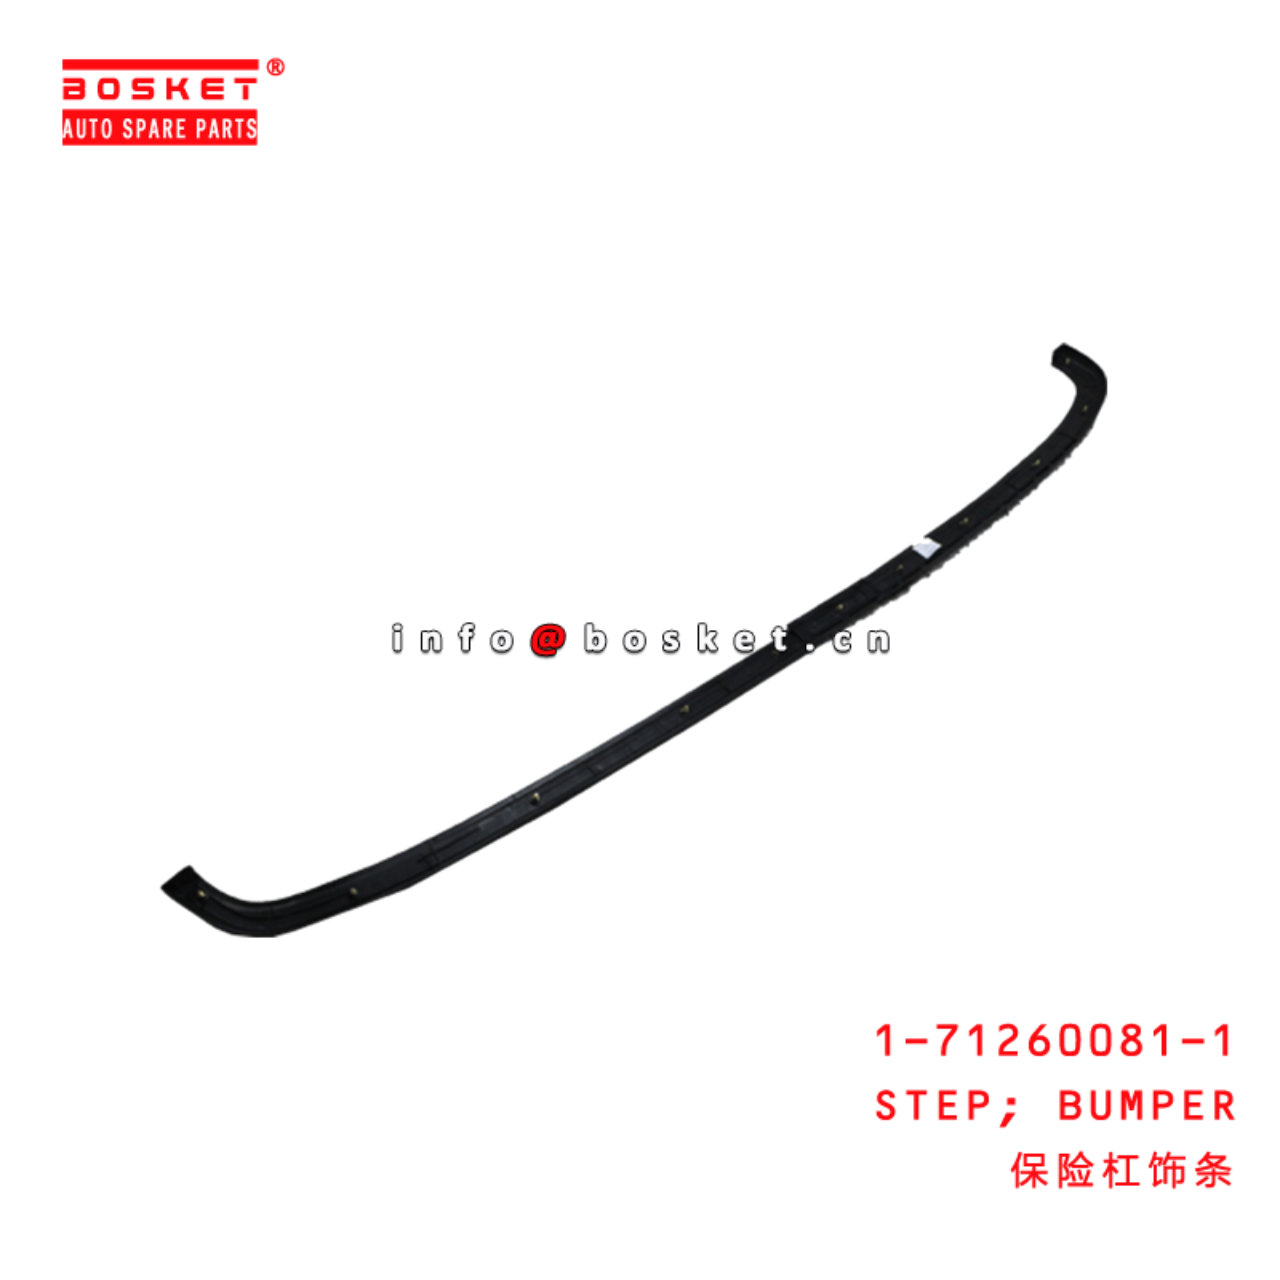 1-71260081-1 Bumper Step 1712600811 Suitable for ISUZU FVR